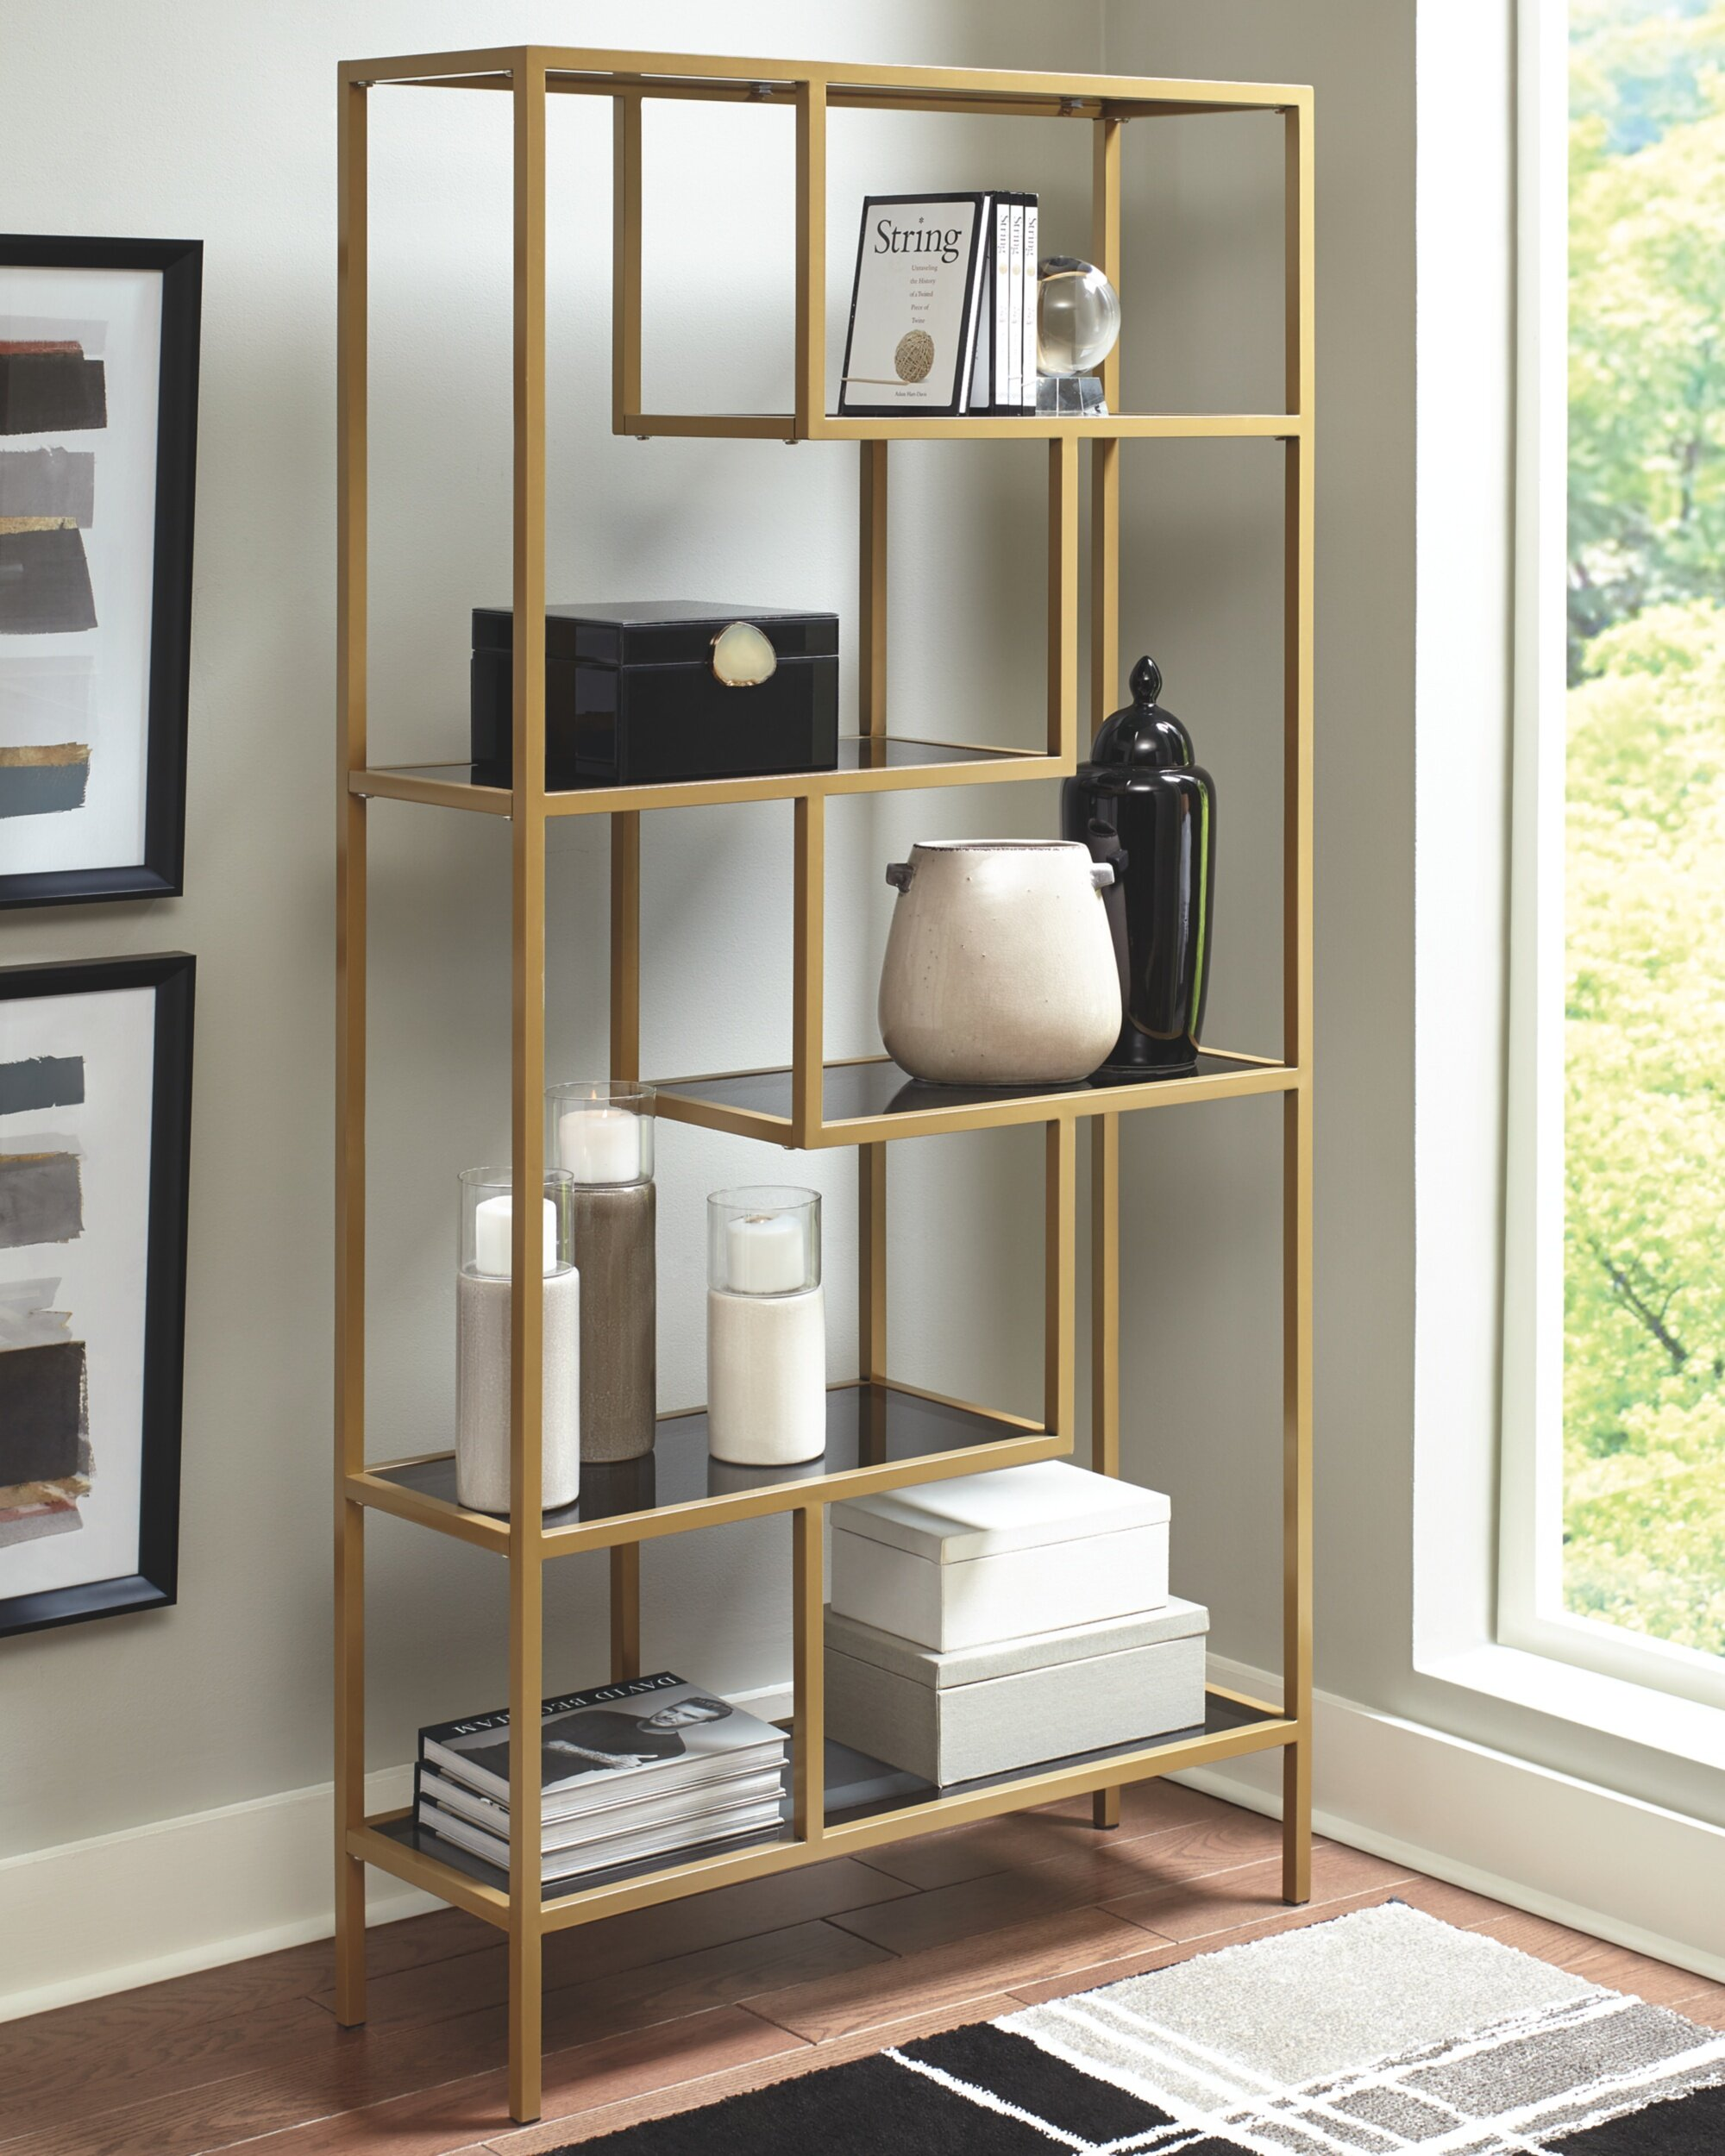 Gold Flamingo Liliana 70 25 H X 36 W Metal Etagere Bookcase Reviews Wayfair